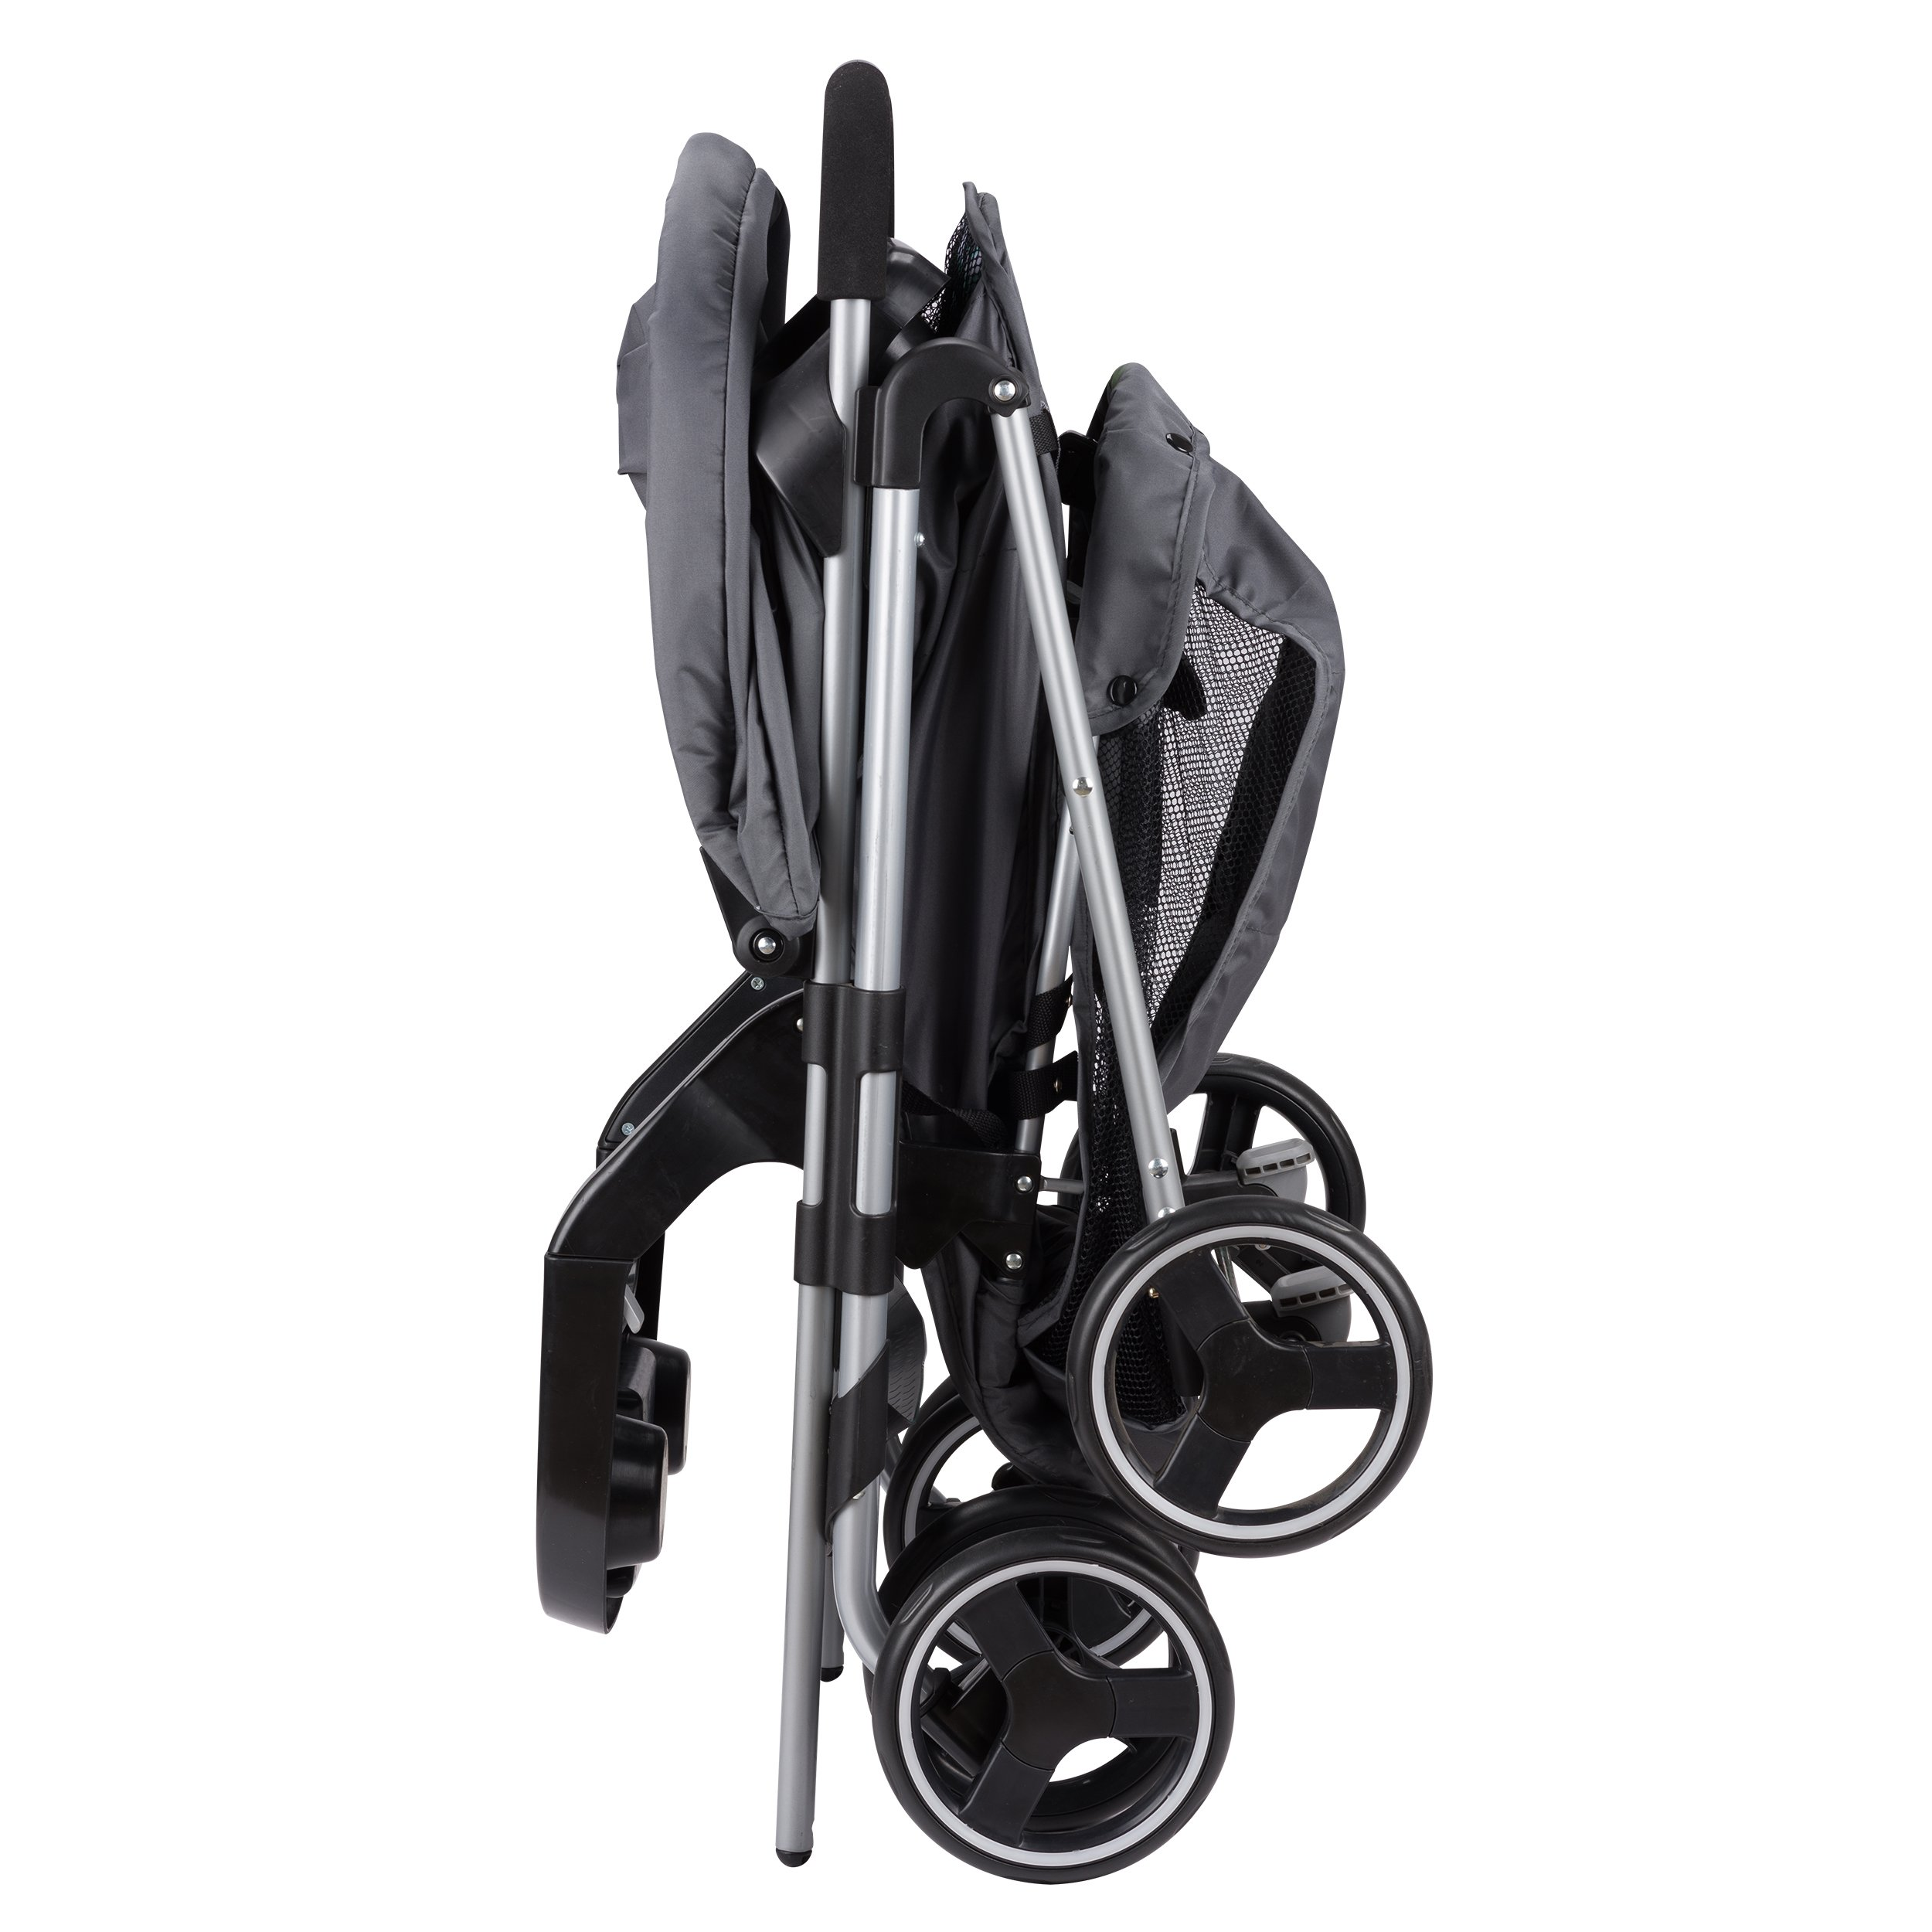 Evenflo Vive Travel System with Embrace, Spearmint Spree by Evenflo (Image #3)